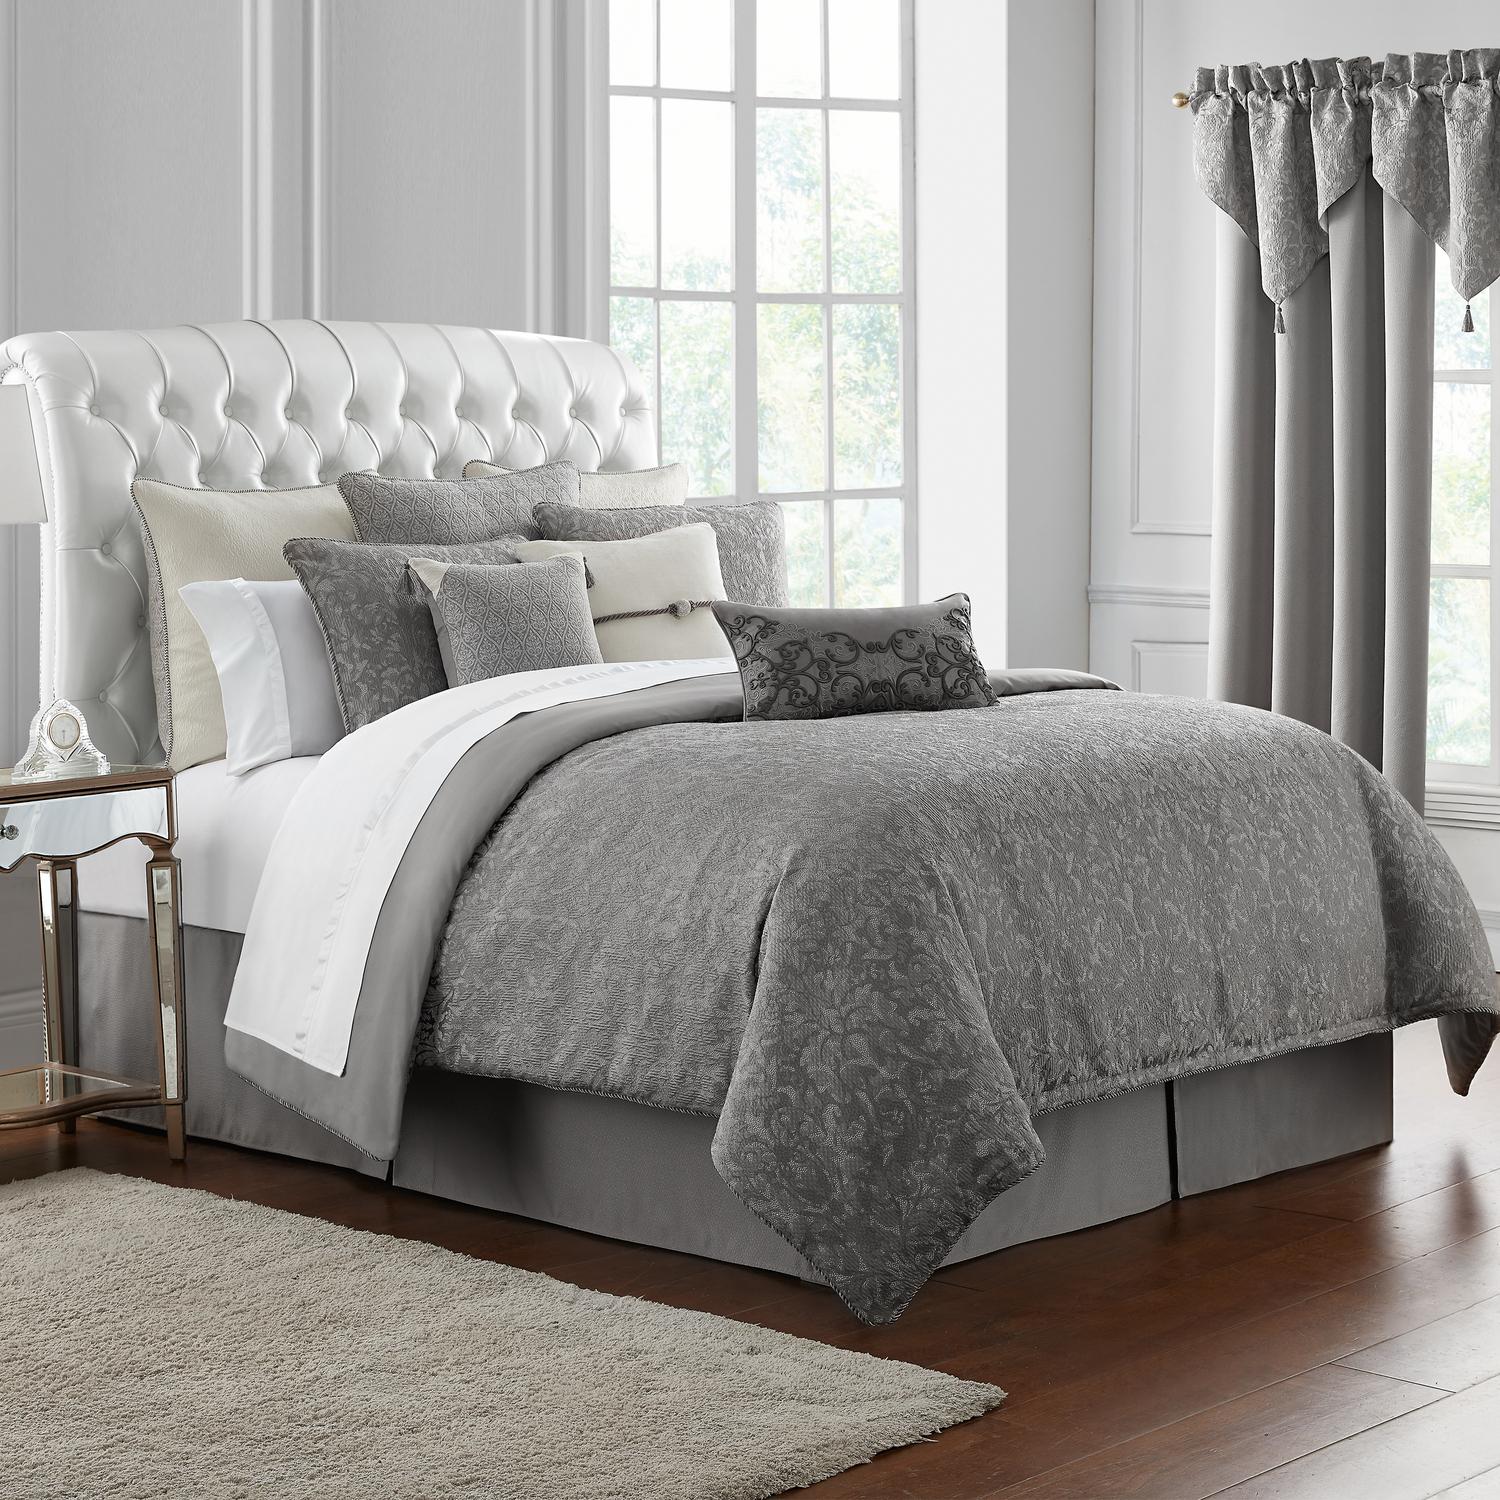 Vernon by Waterford Luxury Bedding